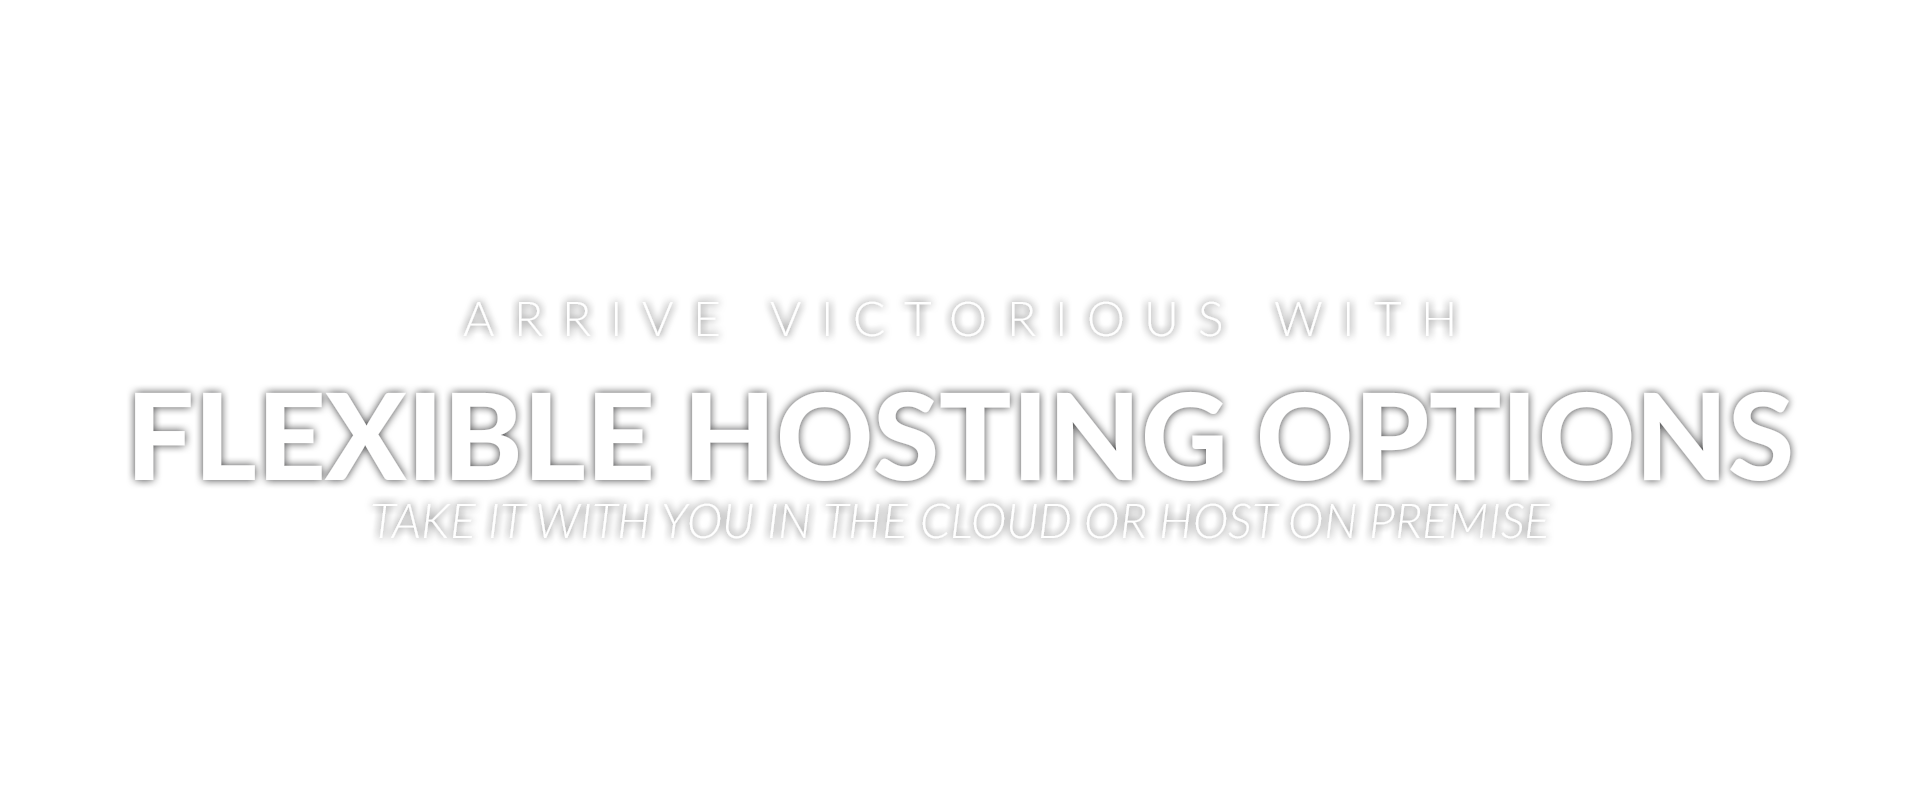 Flexible Hosting Options